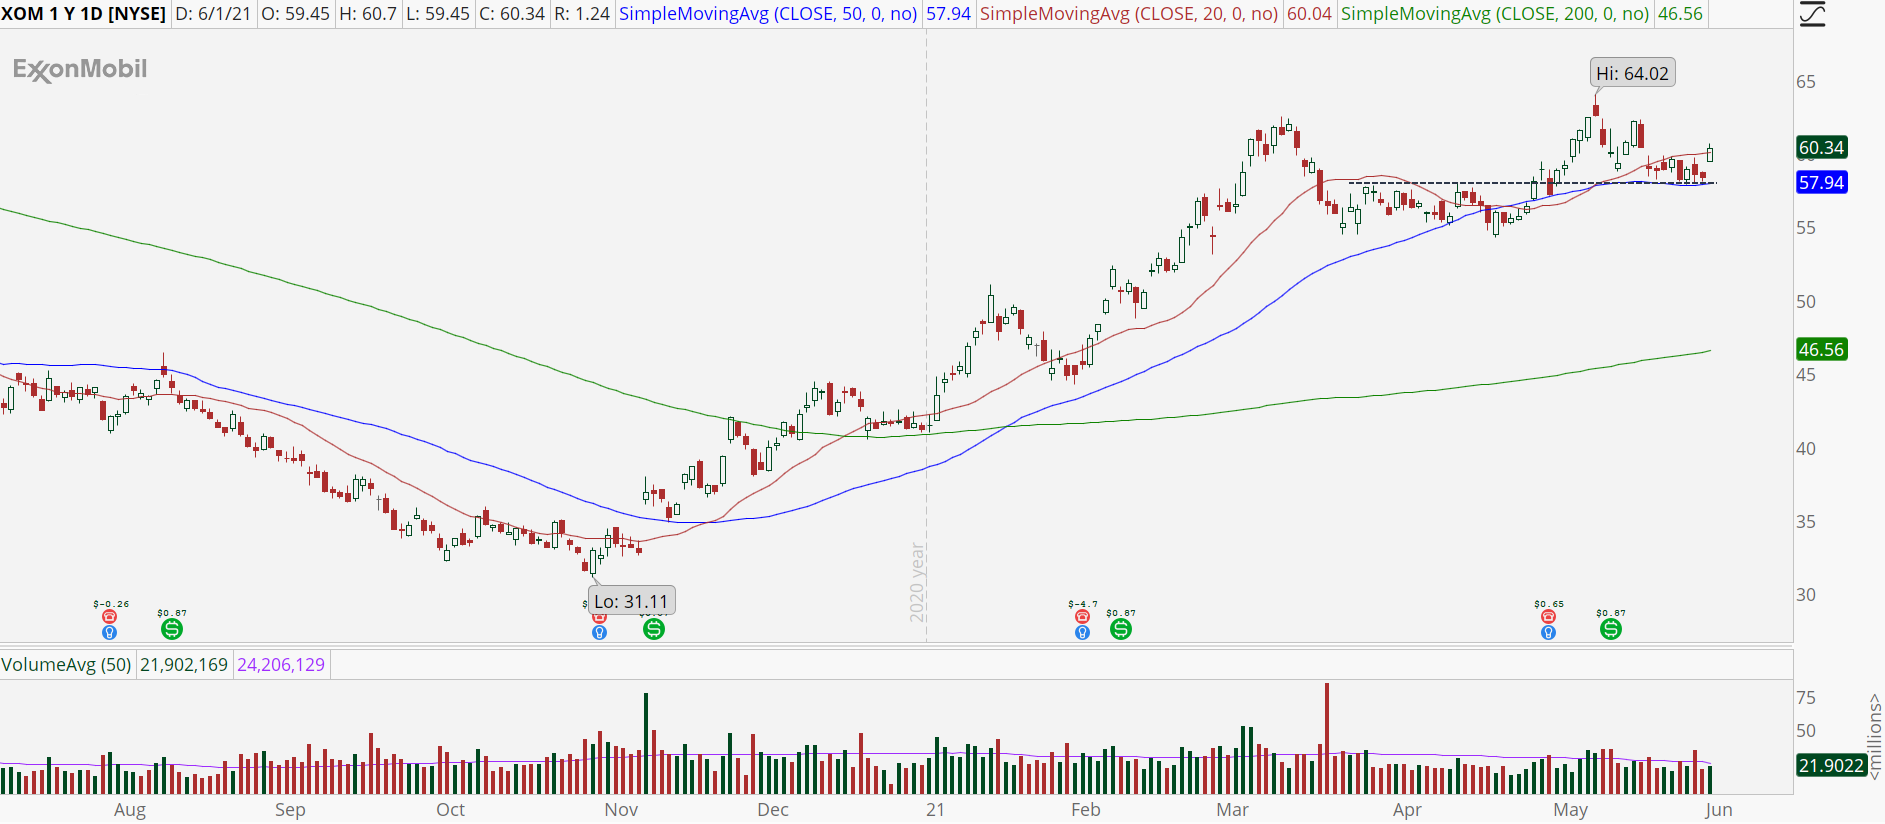 Exxon Mobil (XOM) stock chart with support bounce.